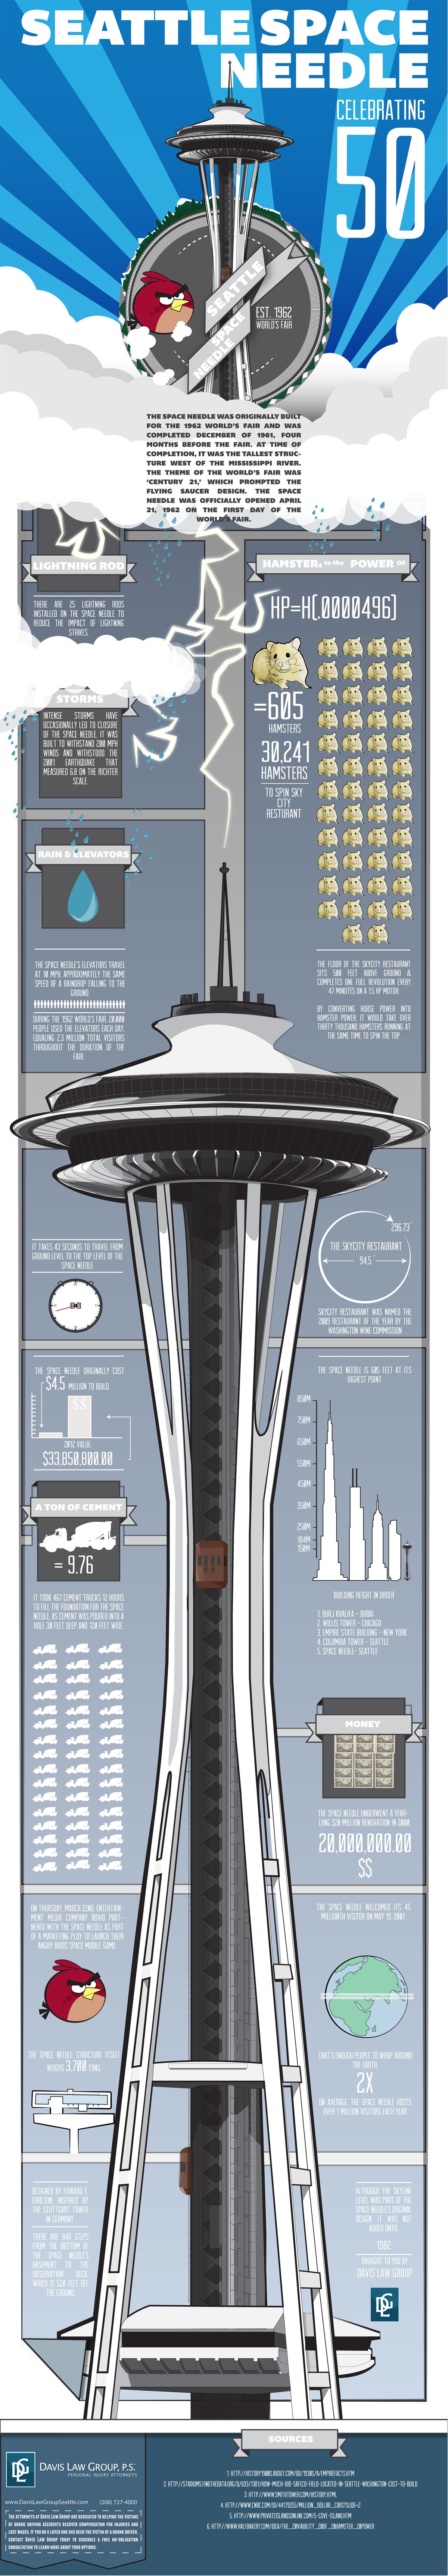 facts about the space needle